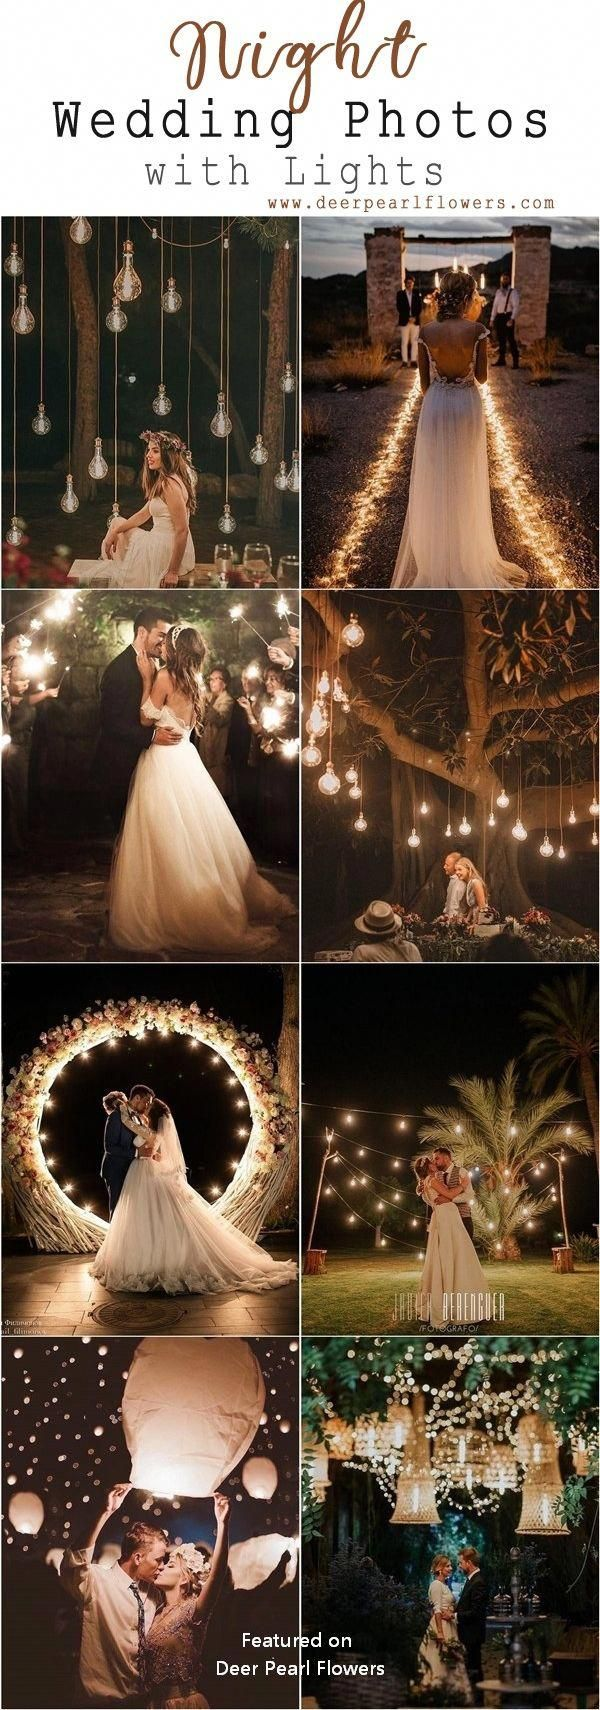 Rustic Wedding Decorations, rustic post reference 8945975810  Simply rustic help to kickstart and plan a really delightful and super awesome decorations  rustic country wedding decorations suggestio is part of Night wedding photos -